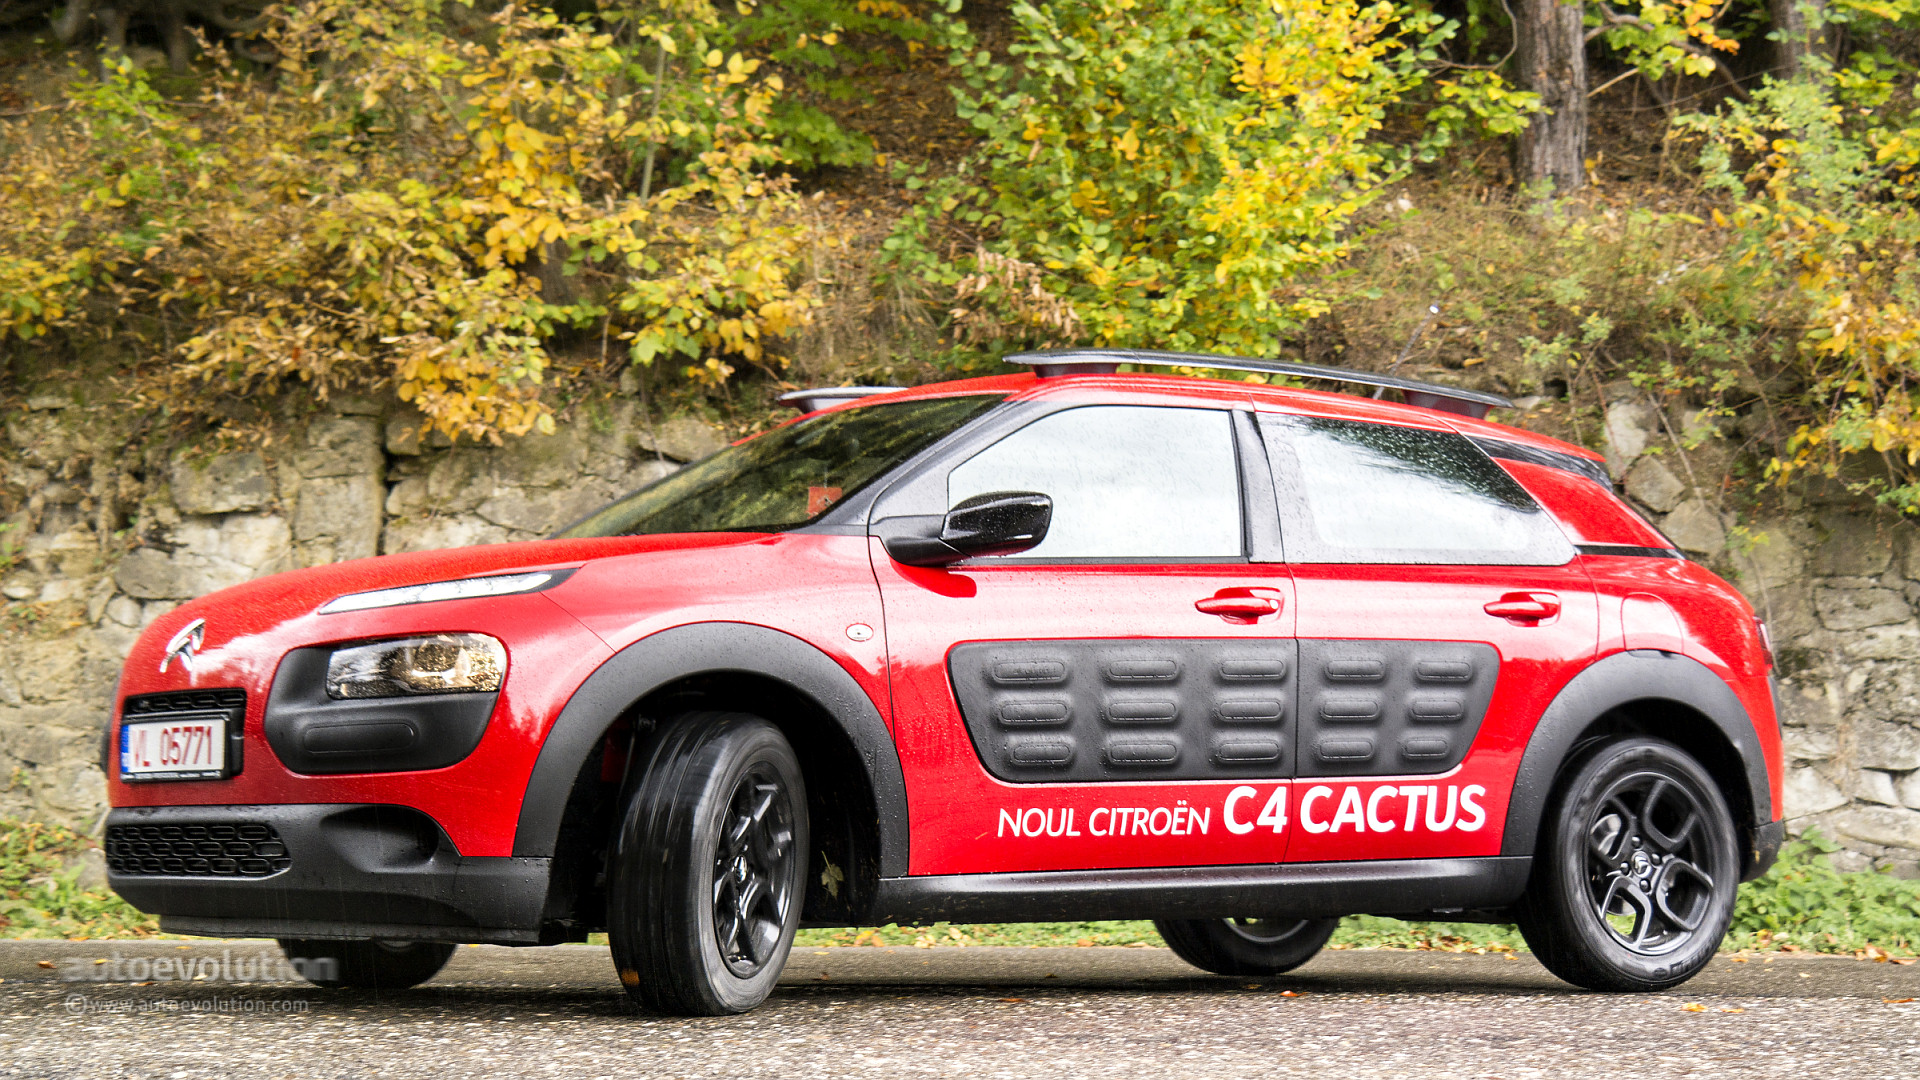 Direct Auto Sales >> Citroen C4 Cactus Falling Behind Rivals with 70,000 Sales in First Year - autoevolution